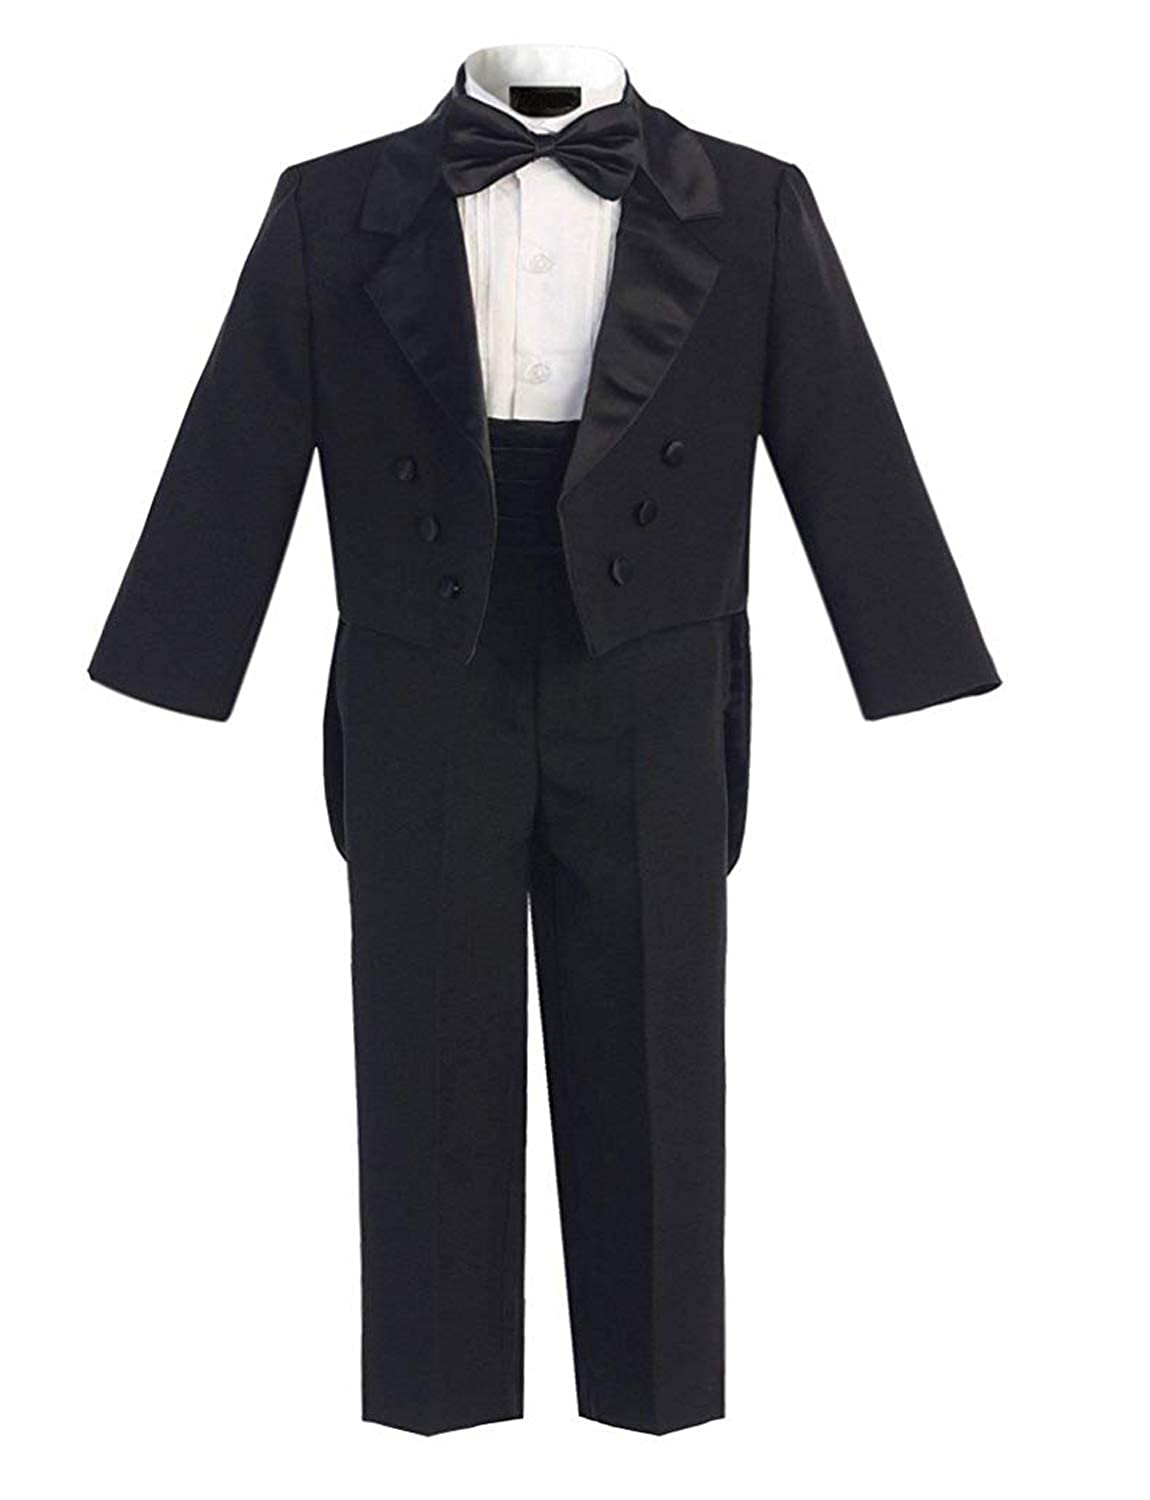 DGMJ Wedding Suits for Boys Slim Fit Tuxedo Suit with Tails Formal Outfit for Christmas HTXZ009